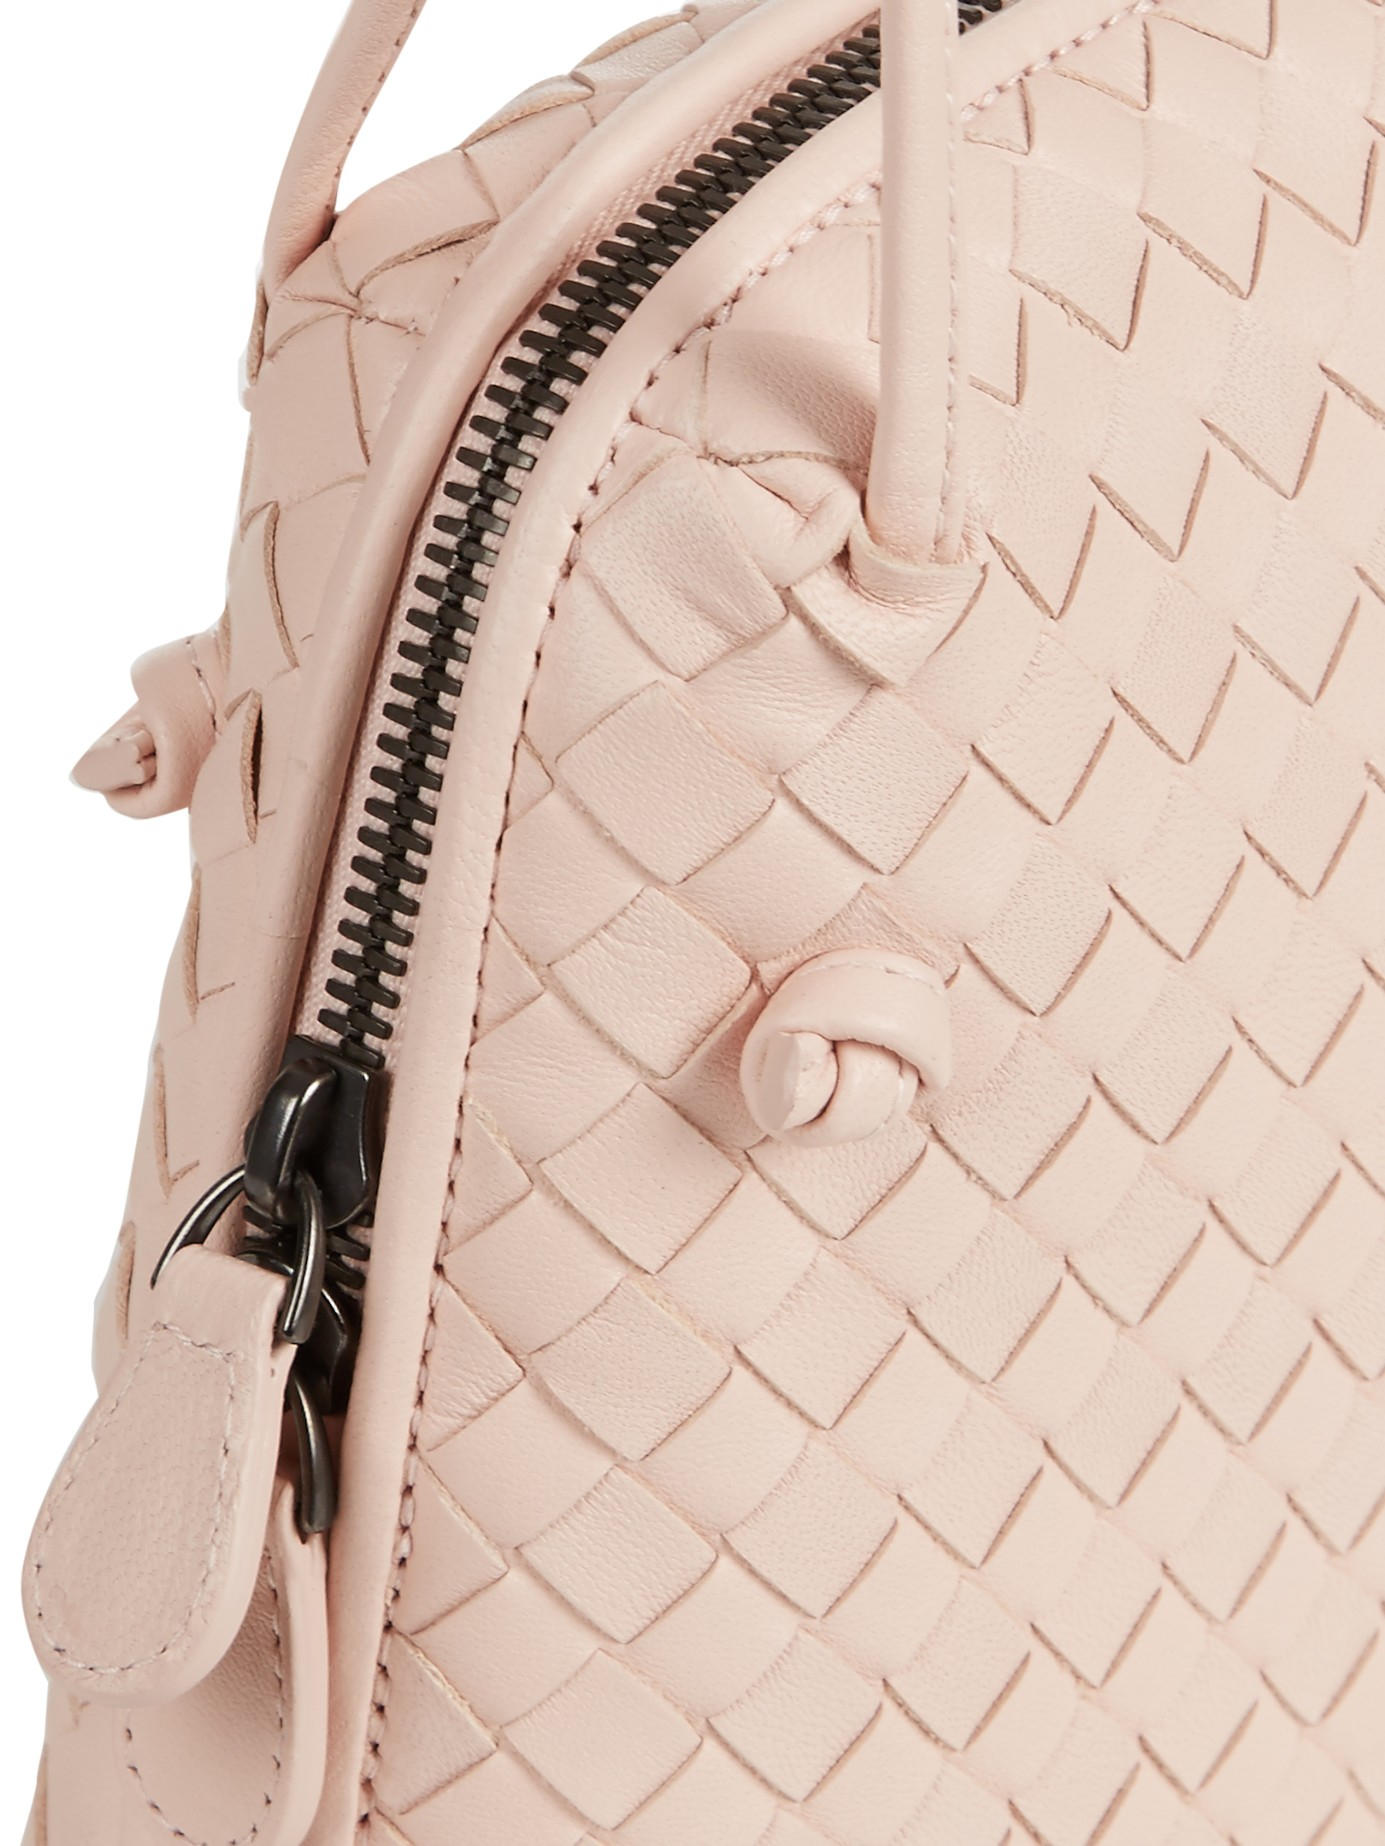 5efbf19dba05 Bottega Veneta Nodini Intrecciato Leather Cross-body Bag in Pink - Lyst